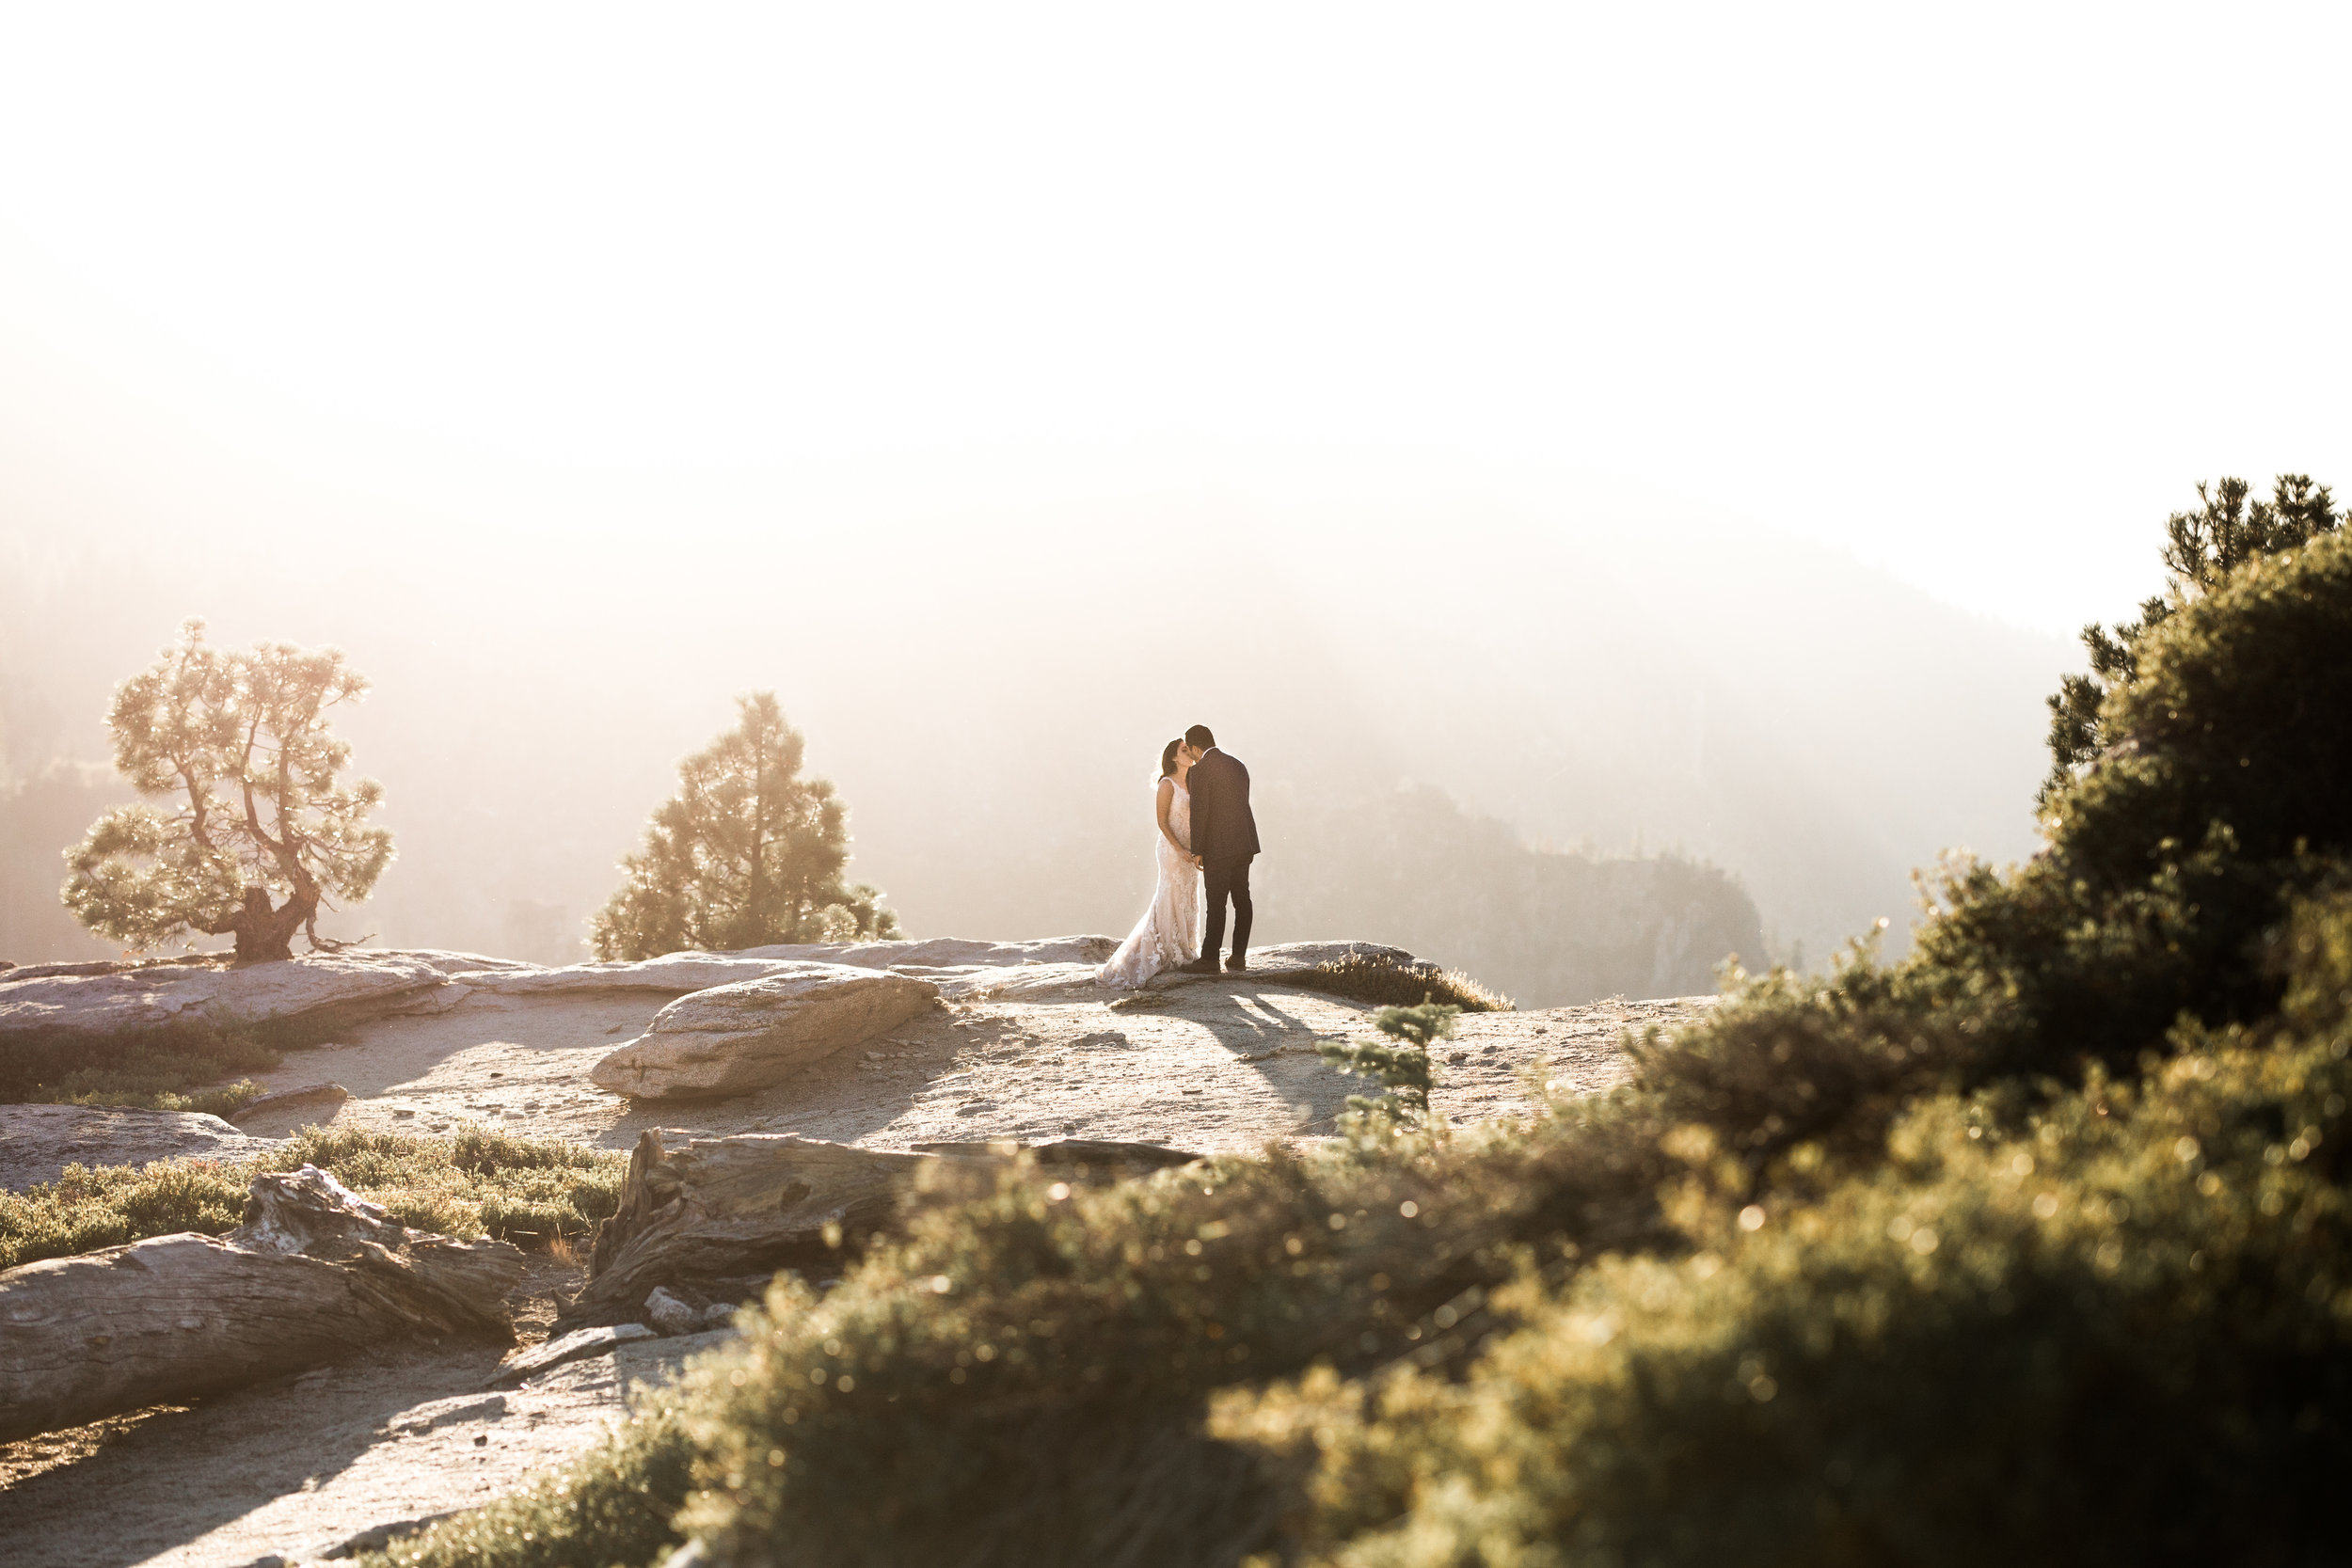 nicole-daacke-photography-yosemite-national-park-elopement-at-taft-point-tunnel-view-yosemite-intimate-wedding-fall-sunset-adventure-elopement-photographer-44.jpg